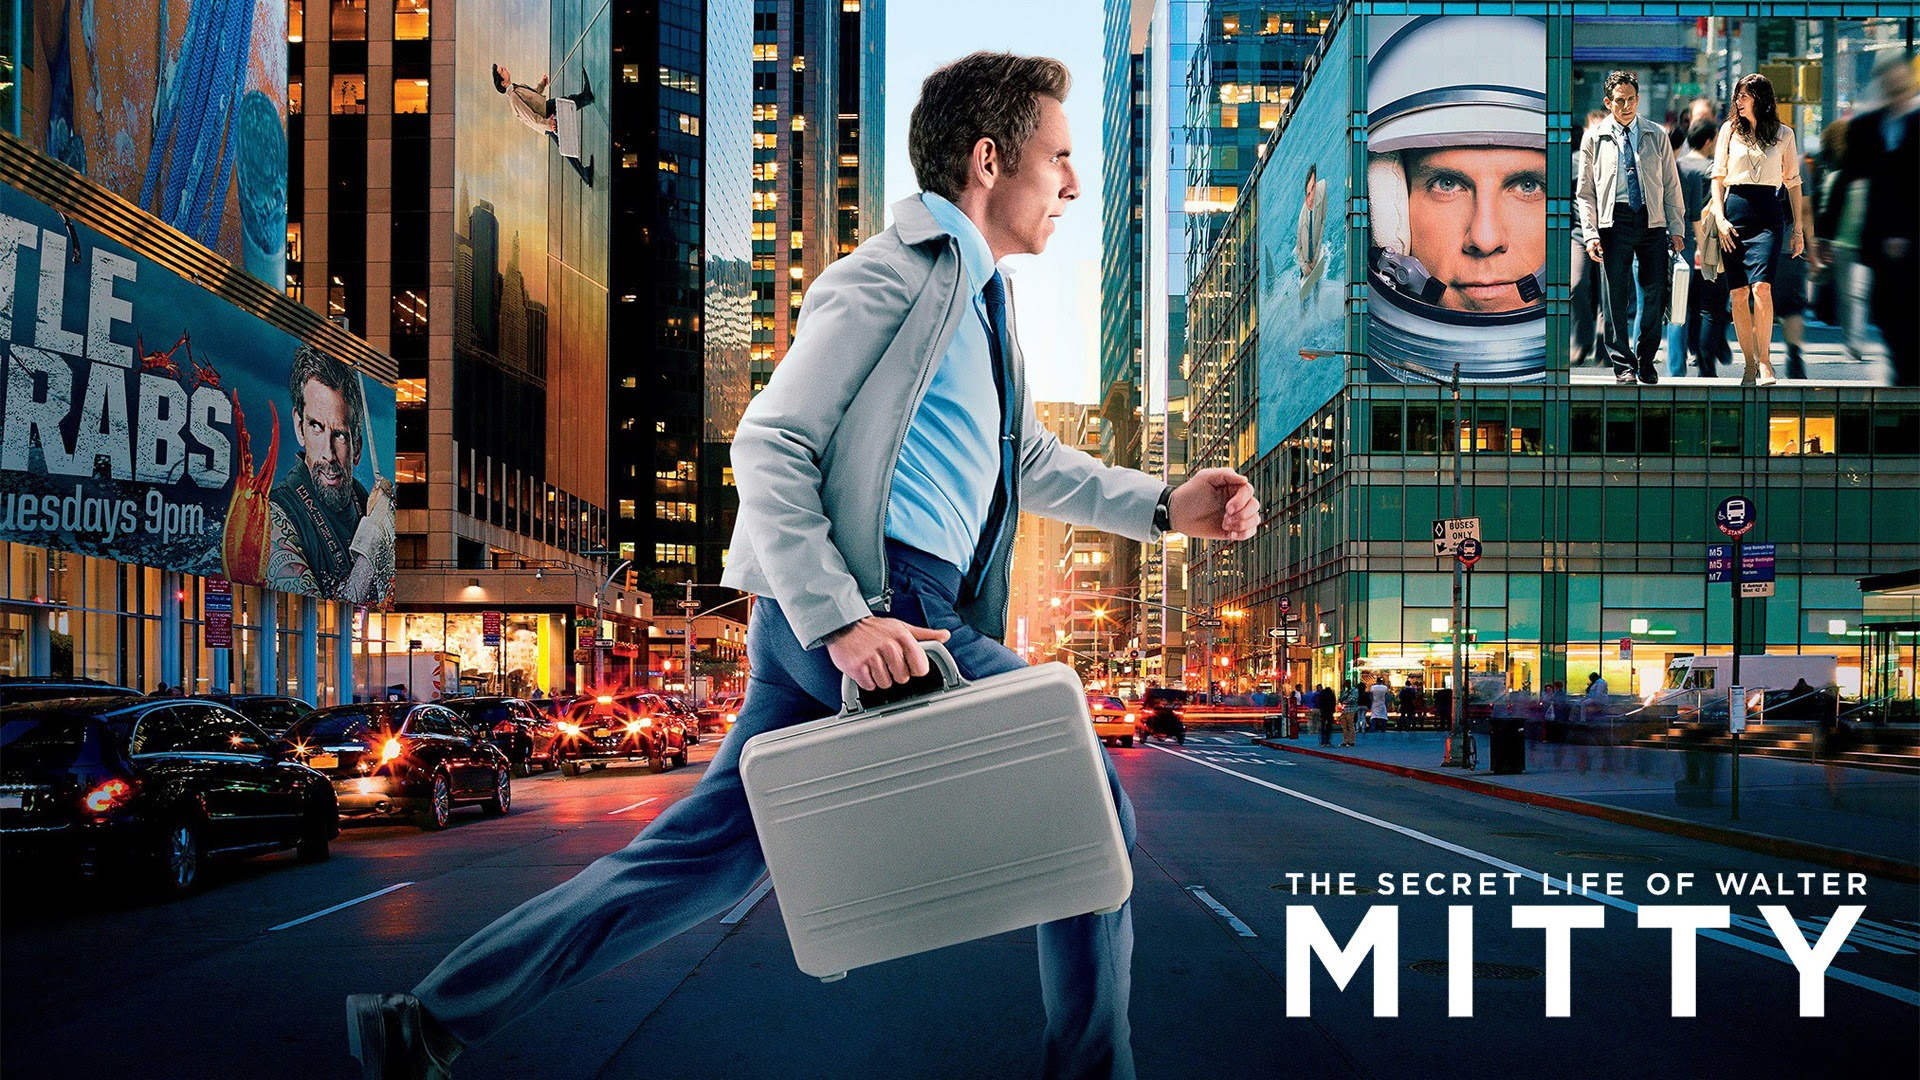 The secret life of walter mitty soundtrack free mp3 converter